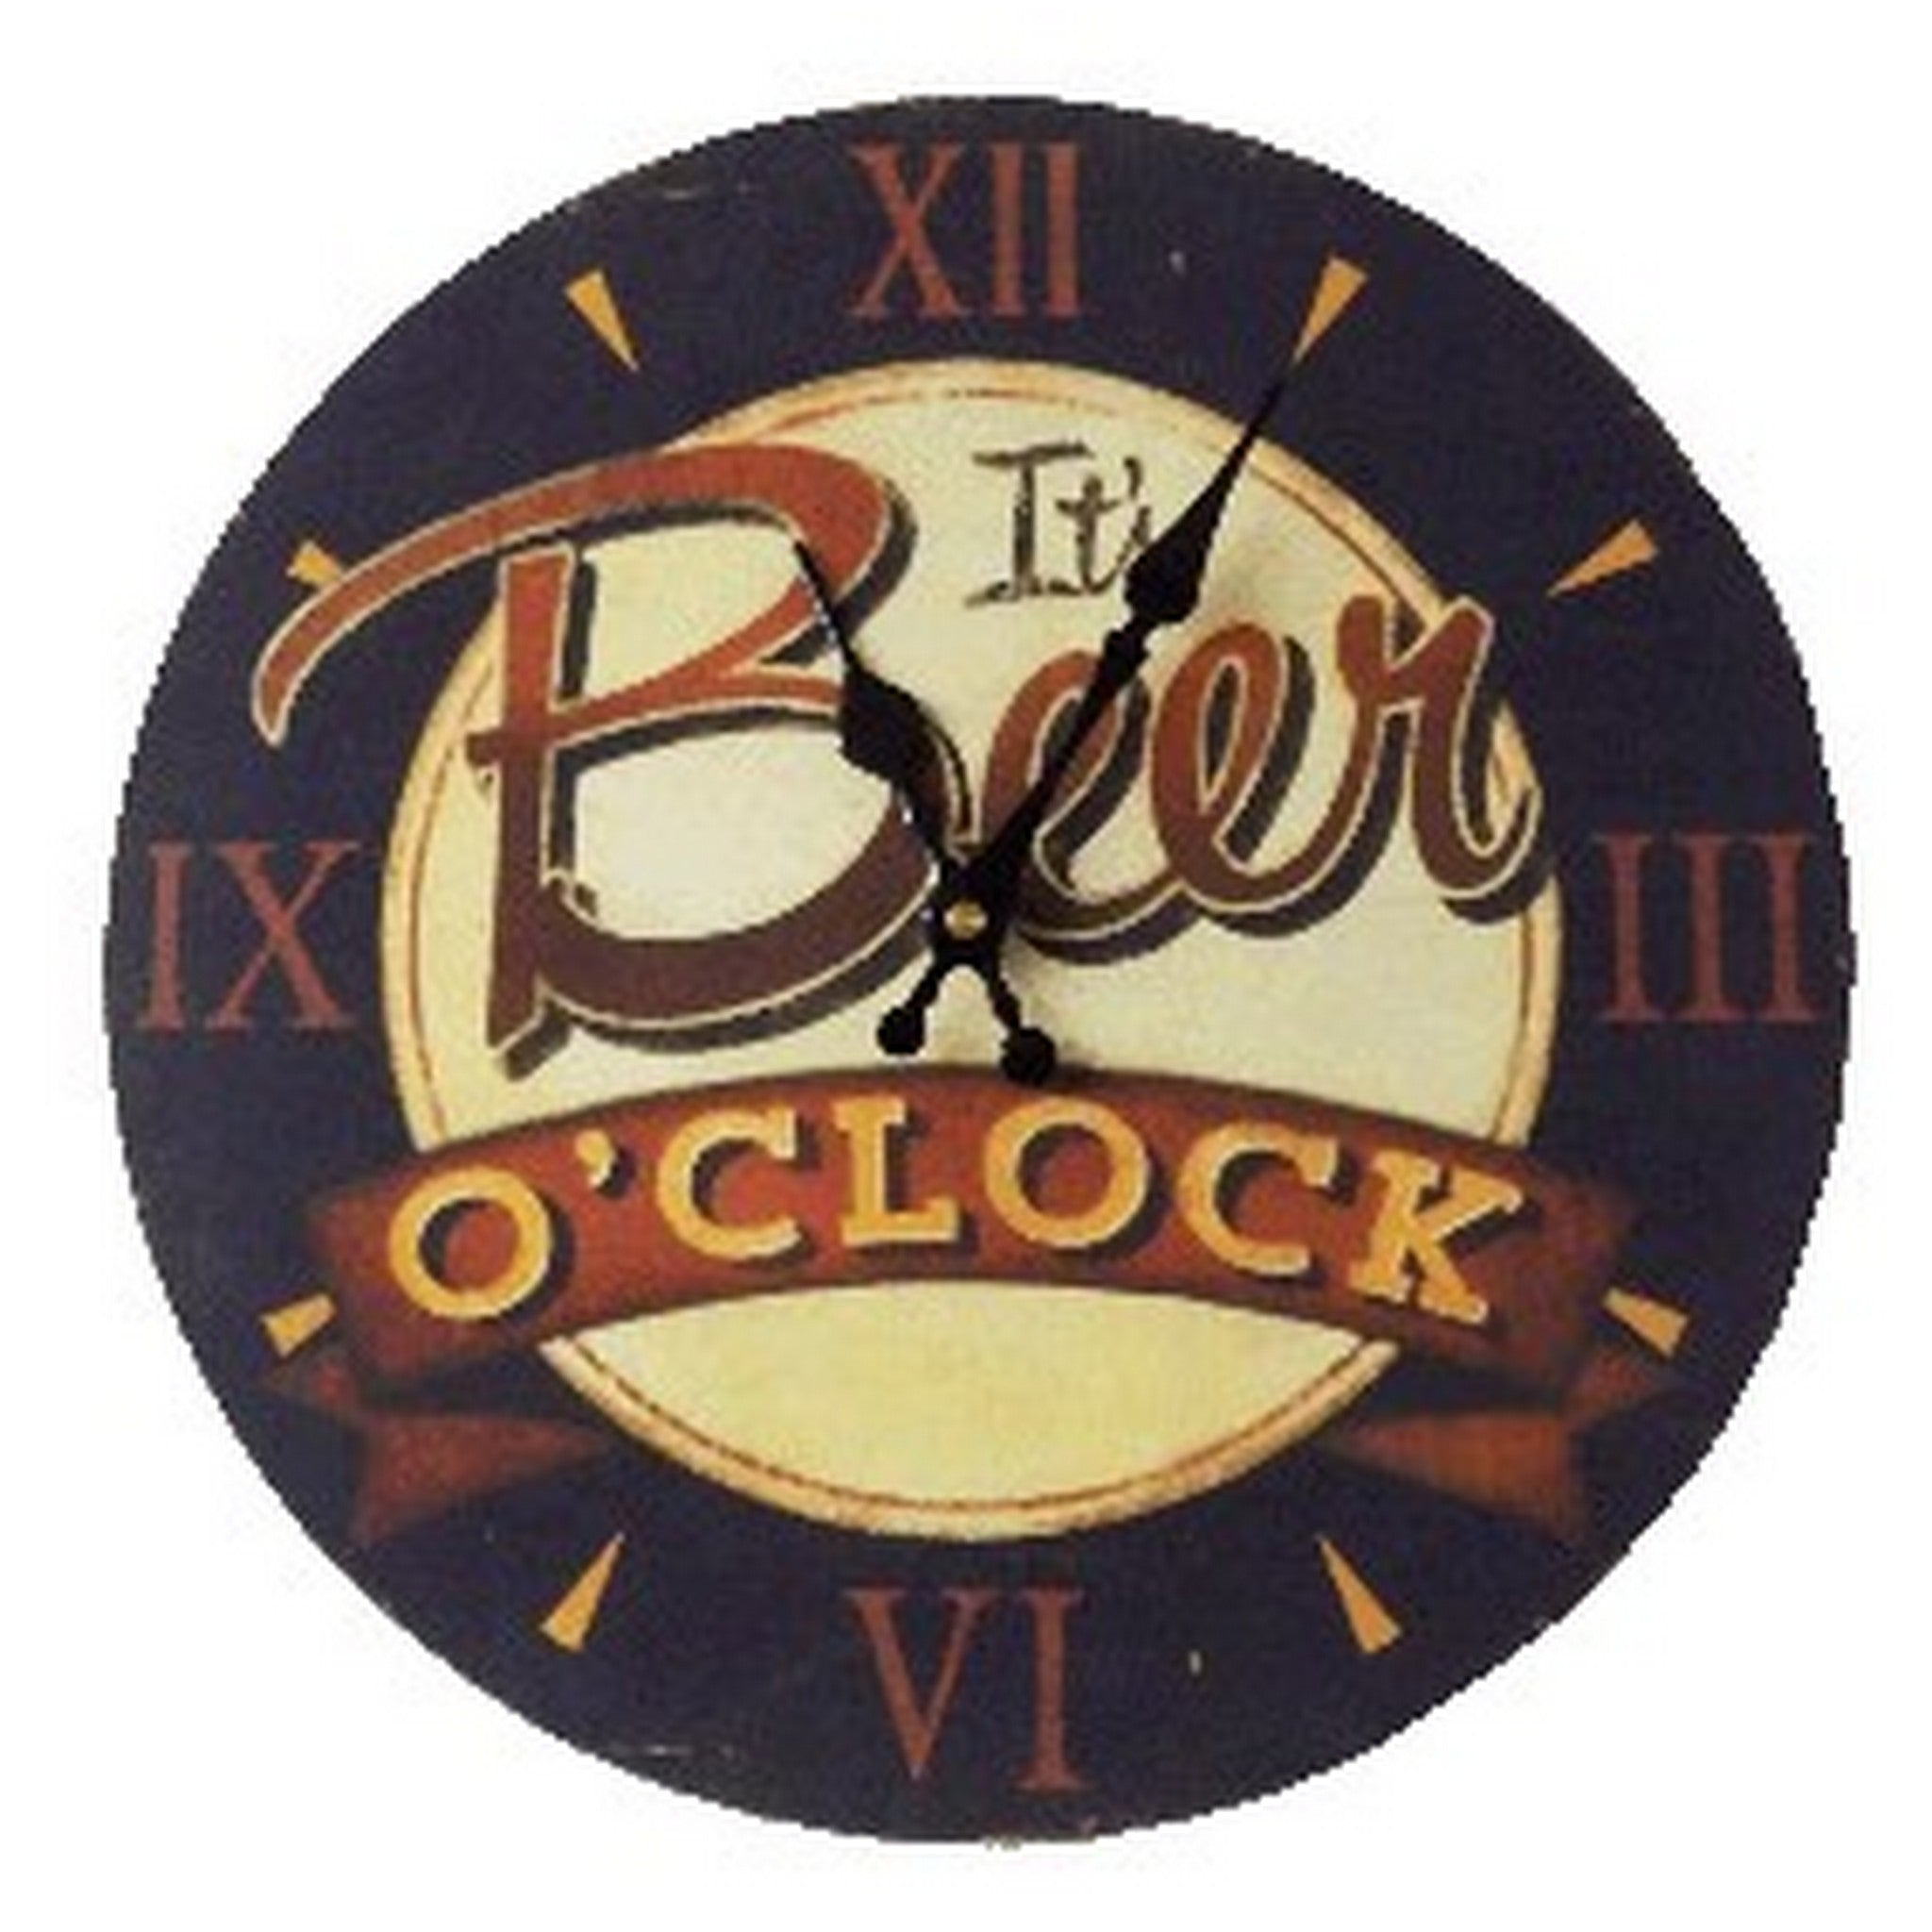 Beer O'clock Wall Clock, 34 cm diameter